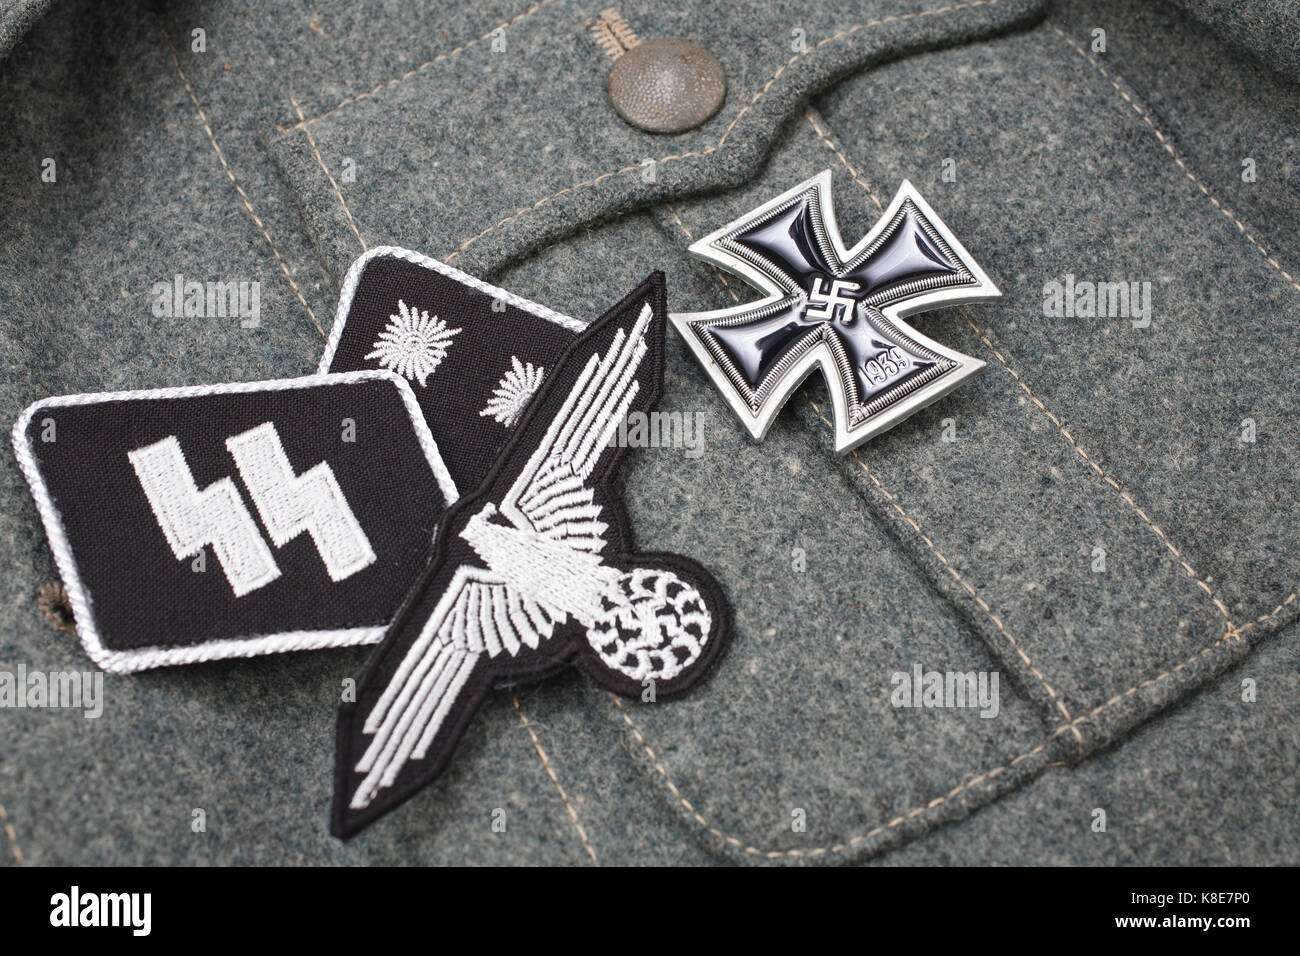 Ss division stock photos ss division stock images alamy ww2 german waffen ss military insignia stock image buycottarizona